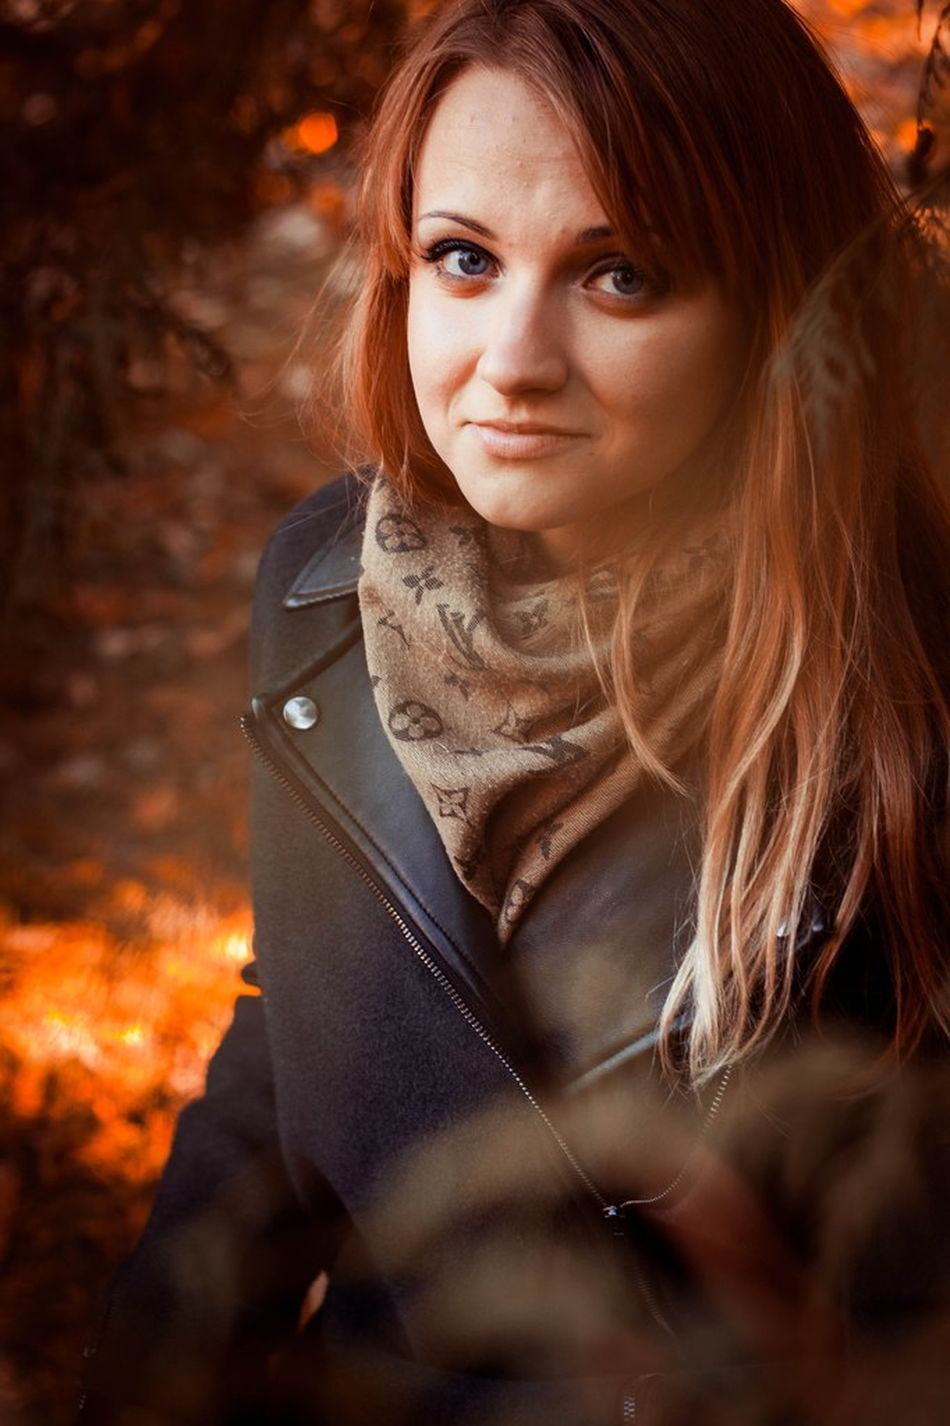 Russia Adult Adults Only Autumn Beautiful People Beautiful Woman Beauty Cristina Long Hair Looking At Camera Nature One Person One Woman Only One Young Woman Only Only Women Outdoors People Portrait Real People Russia Tree Tver Warm Clothing Women Young Adult Young Women